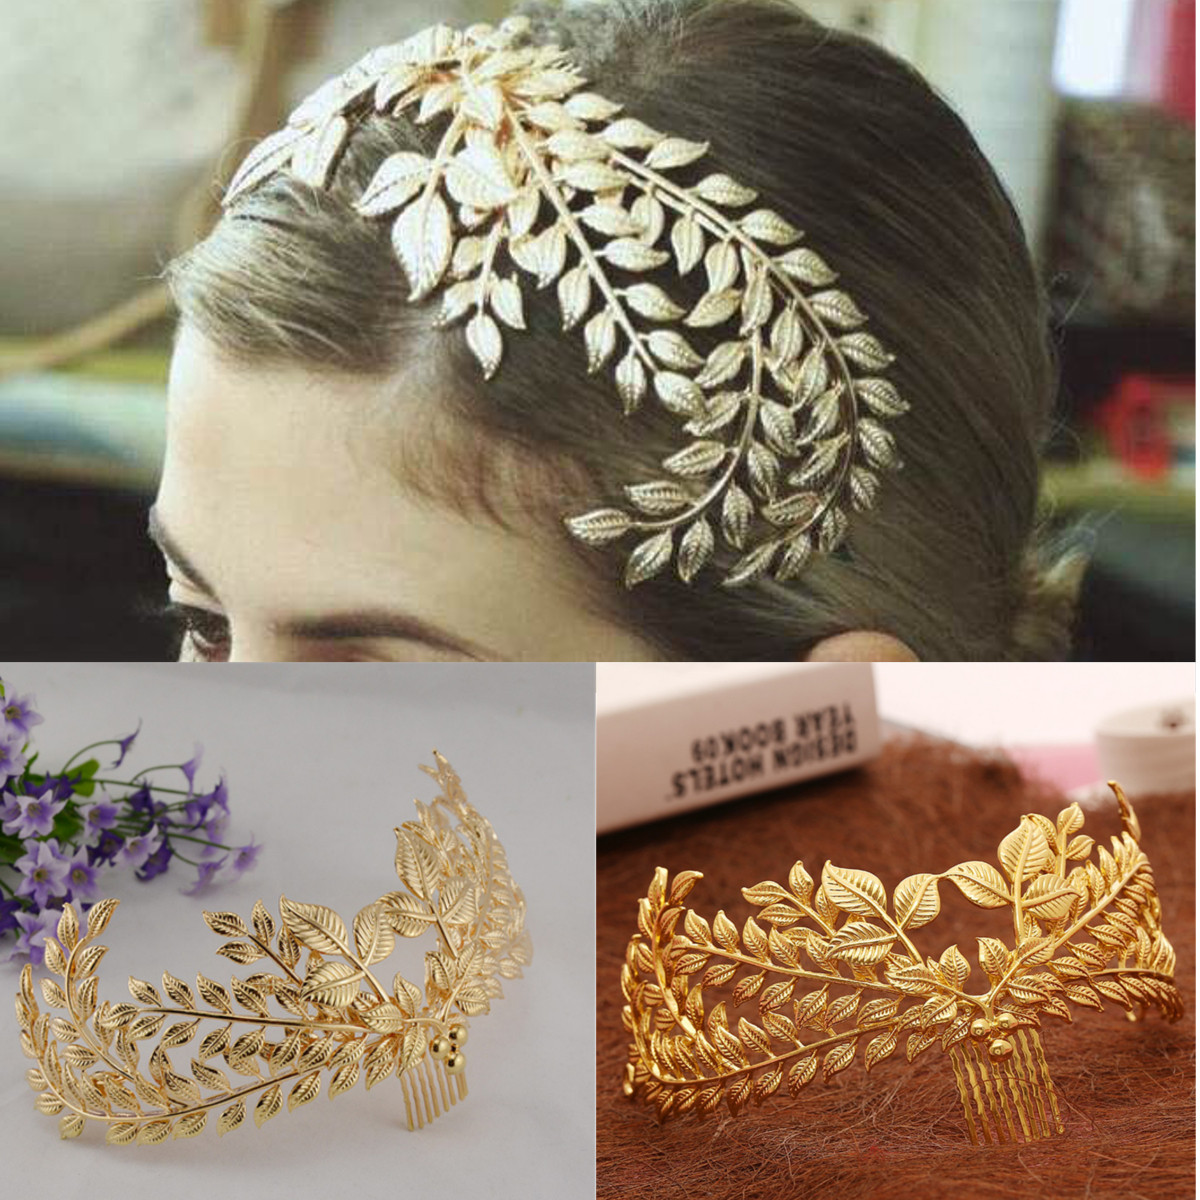 Bride Gold Leaf Headdress Headbrand Roman Hair Crown Vintage 20's Headpiece Comb